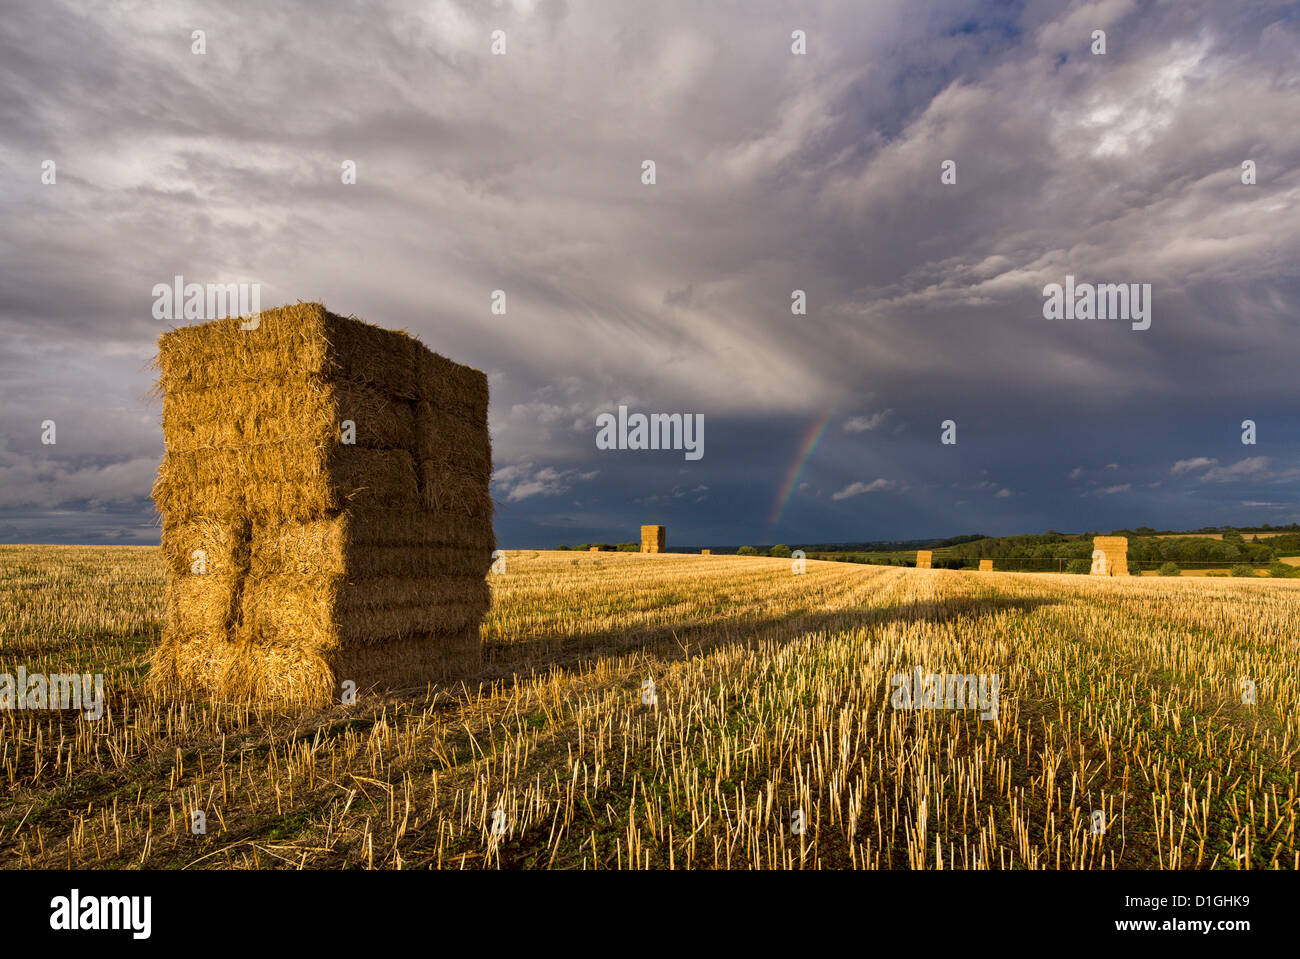 Rainbow and stormy clouds over hay bales, Bramham, West Yorkshire, Yorkshire, England, United Kingdom, Europe - Stock Image